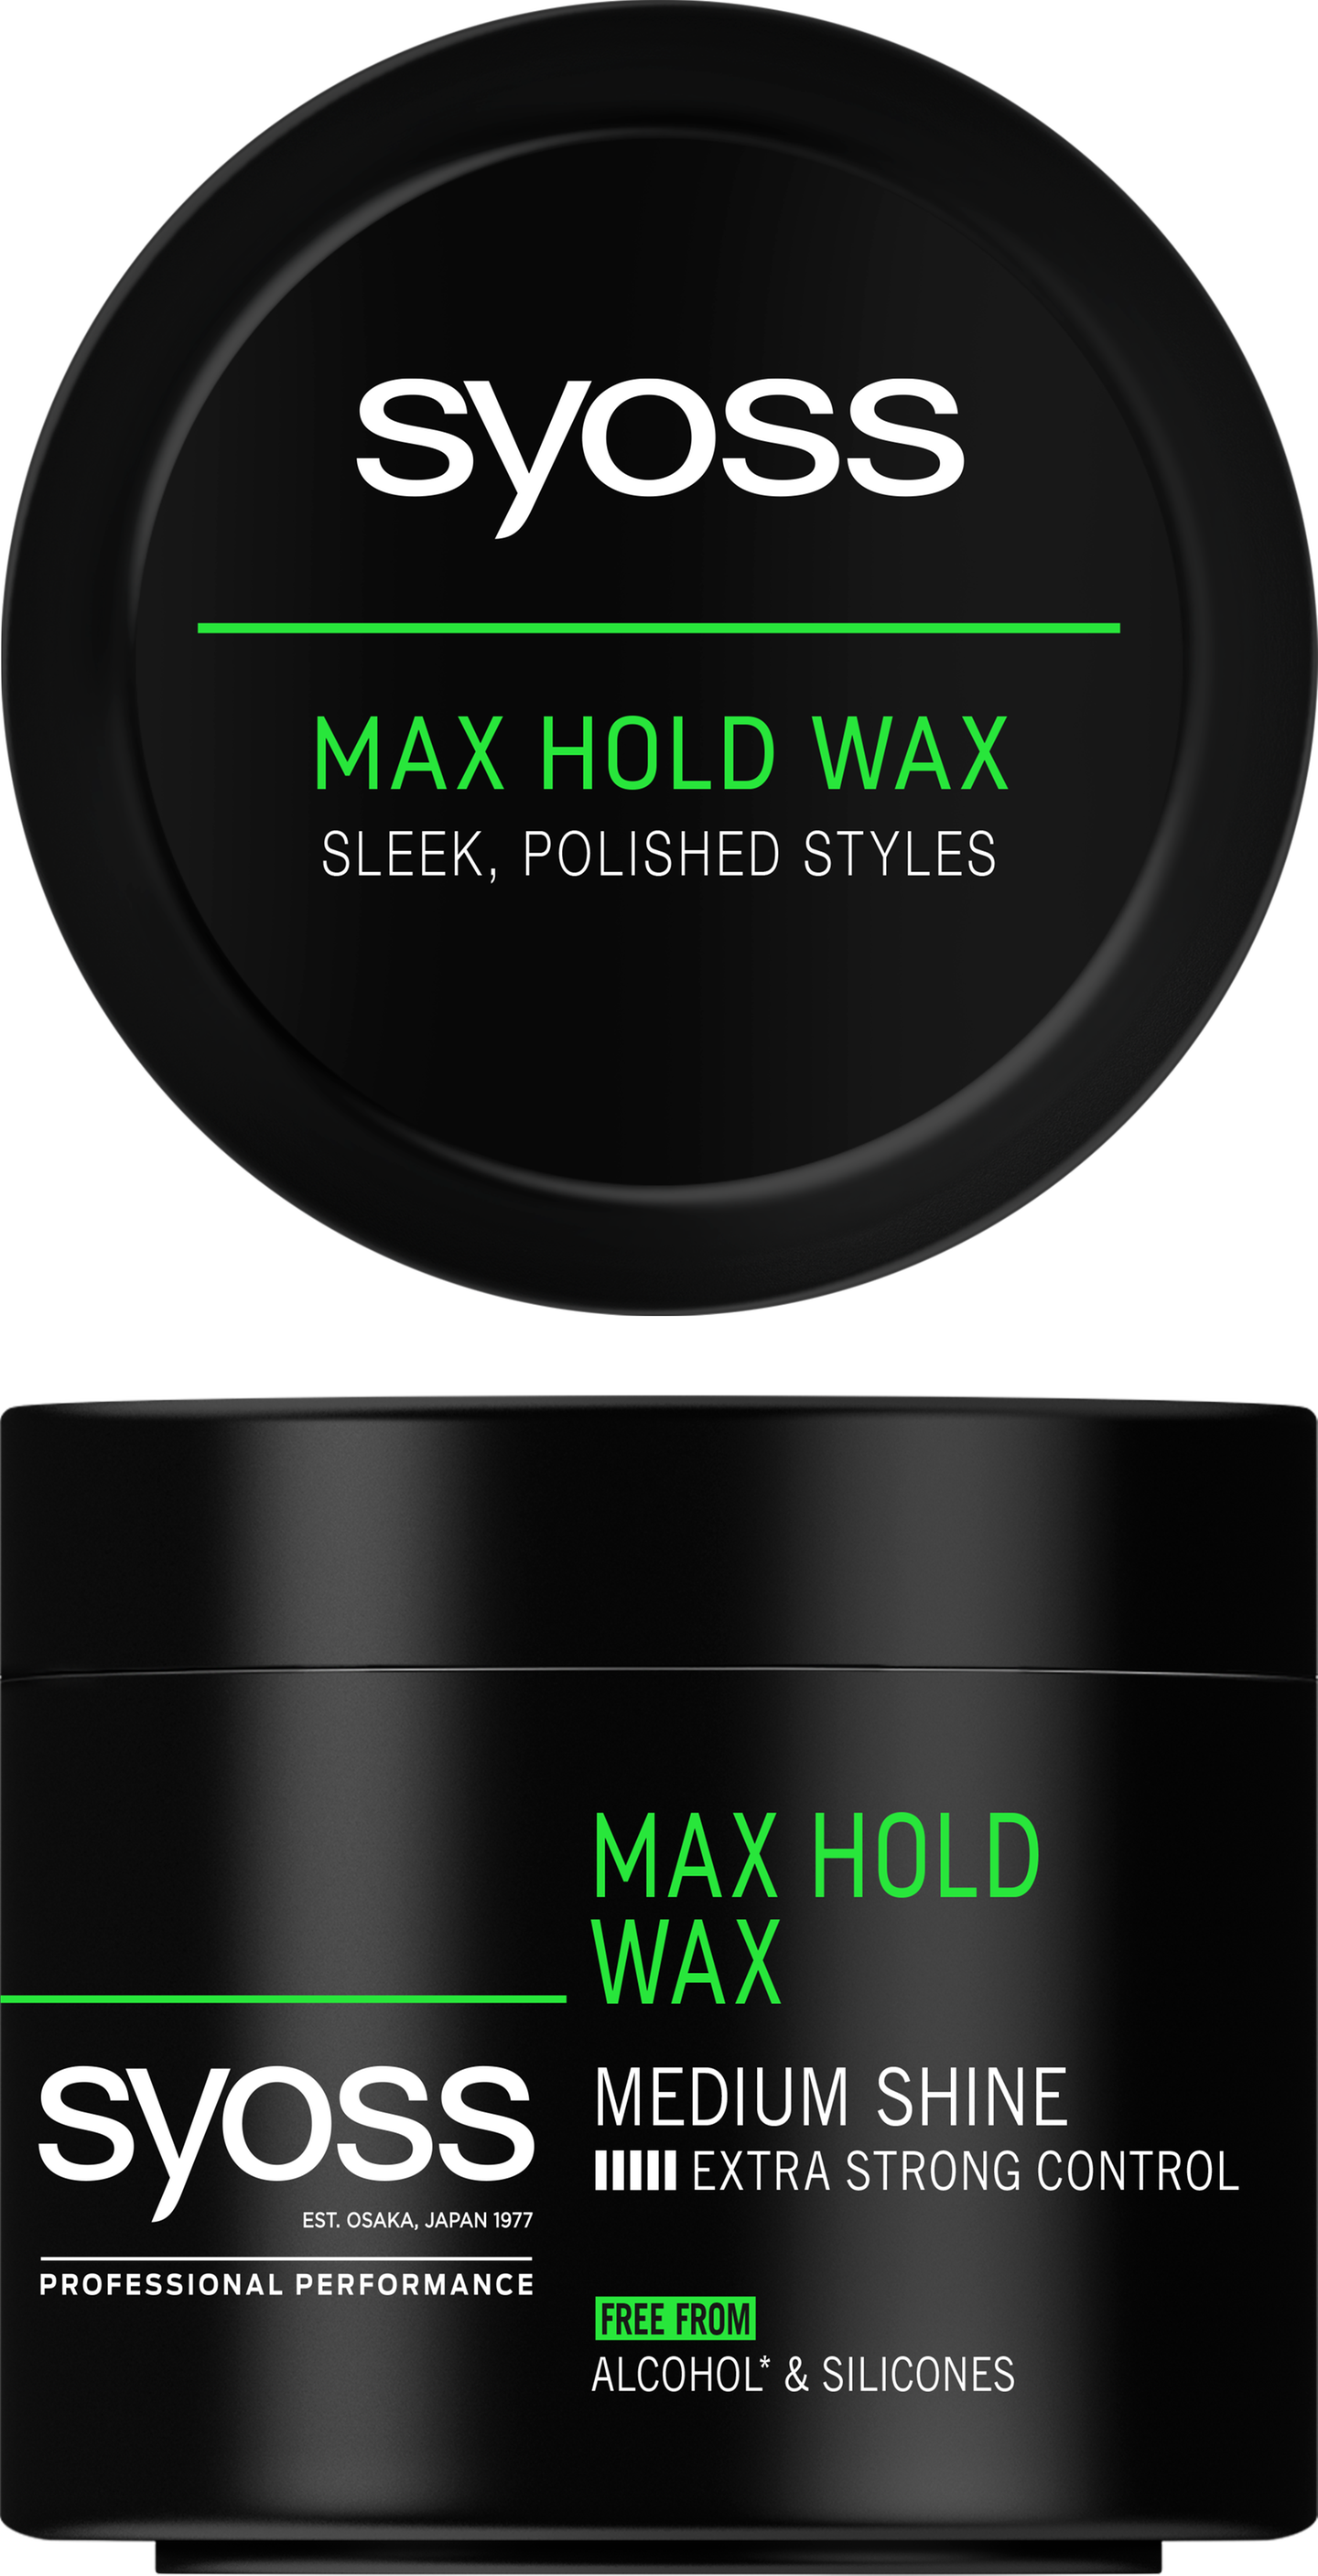 Syoss Max Hold Wax